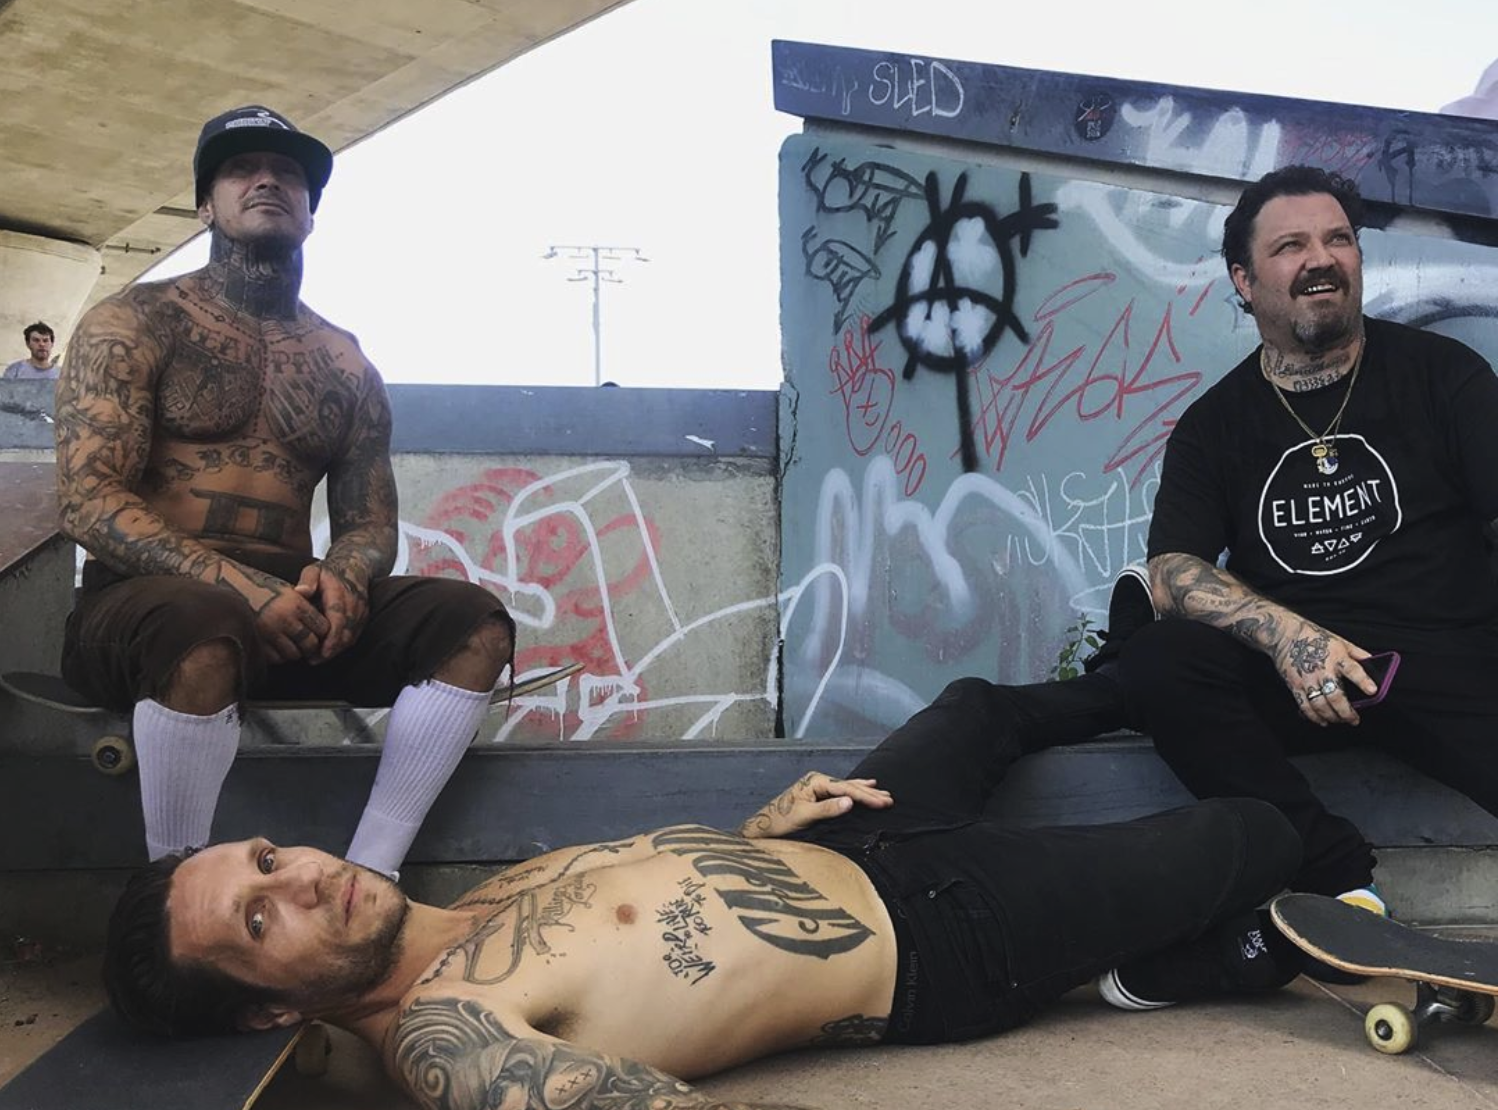 Brandon laying down on the floor at the skatepark